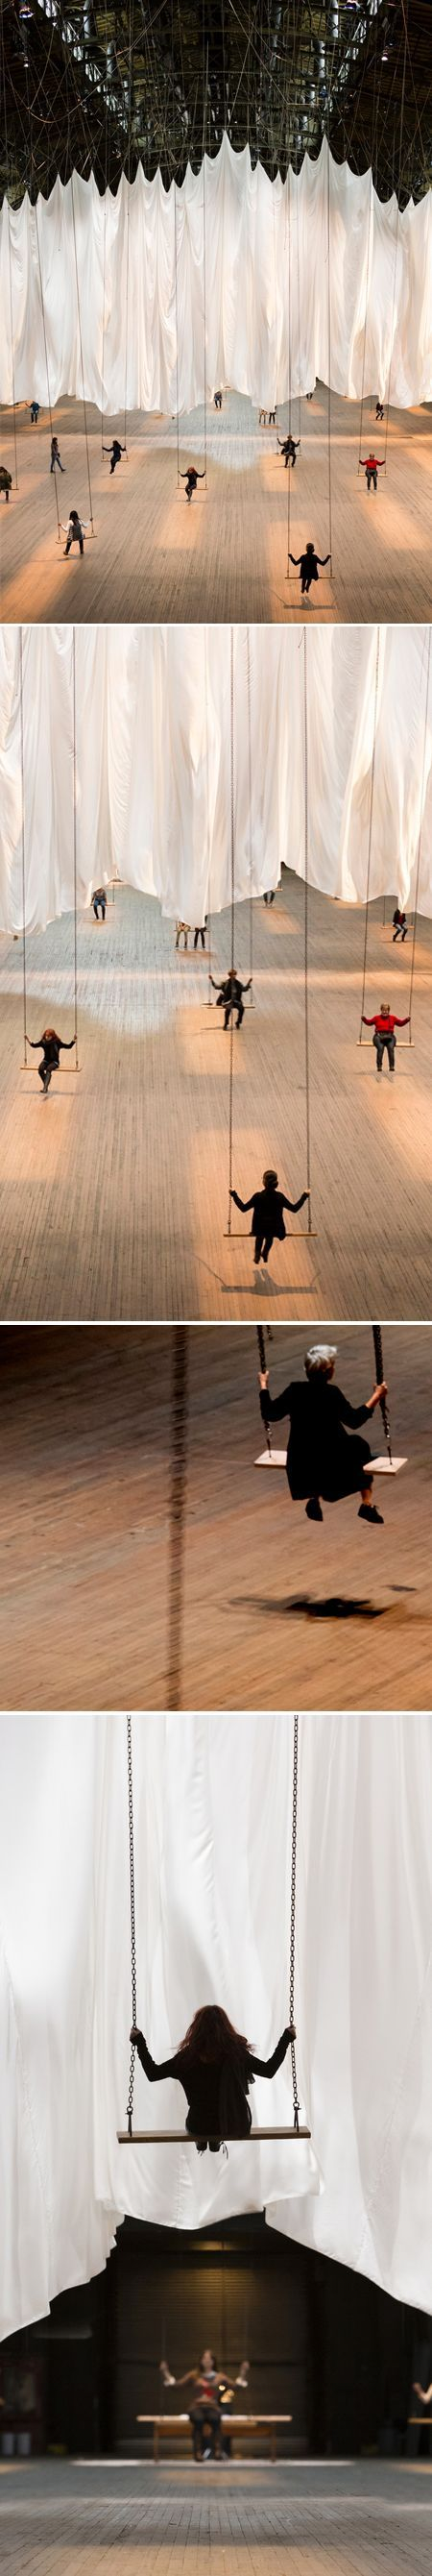 swinging installation... how awesome!